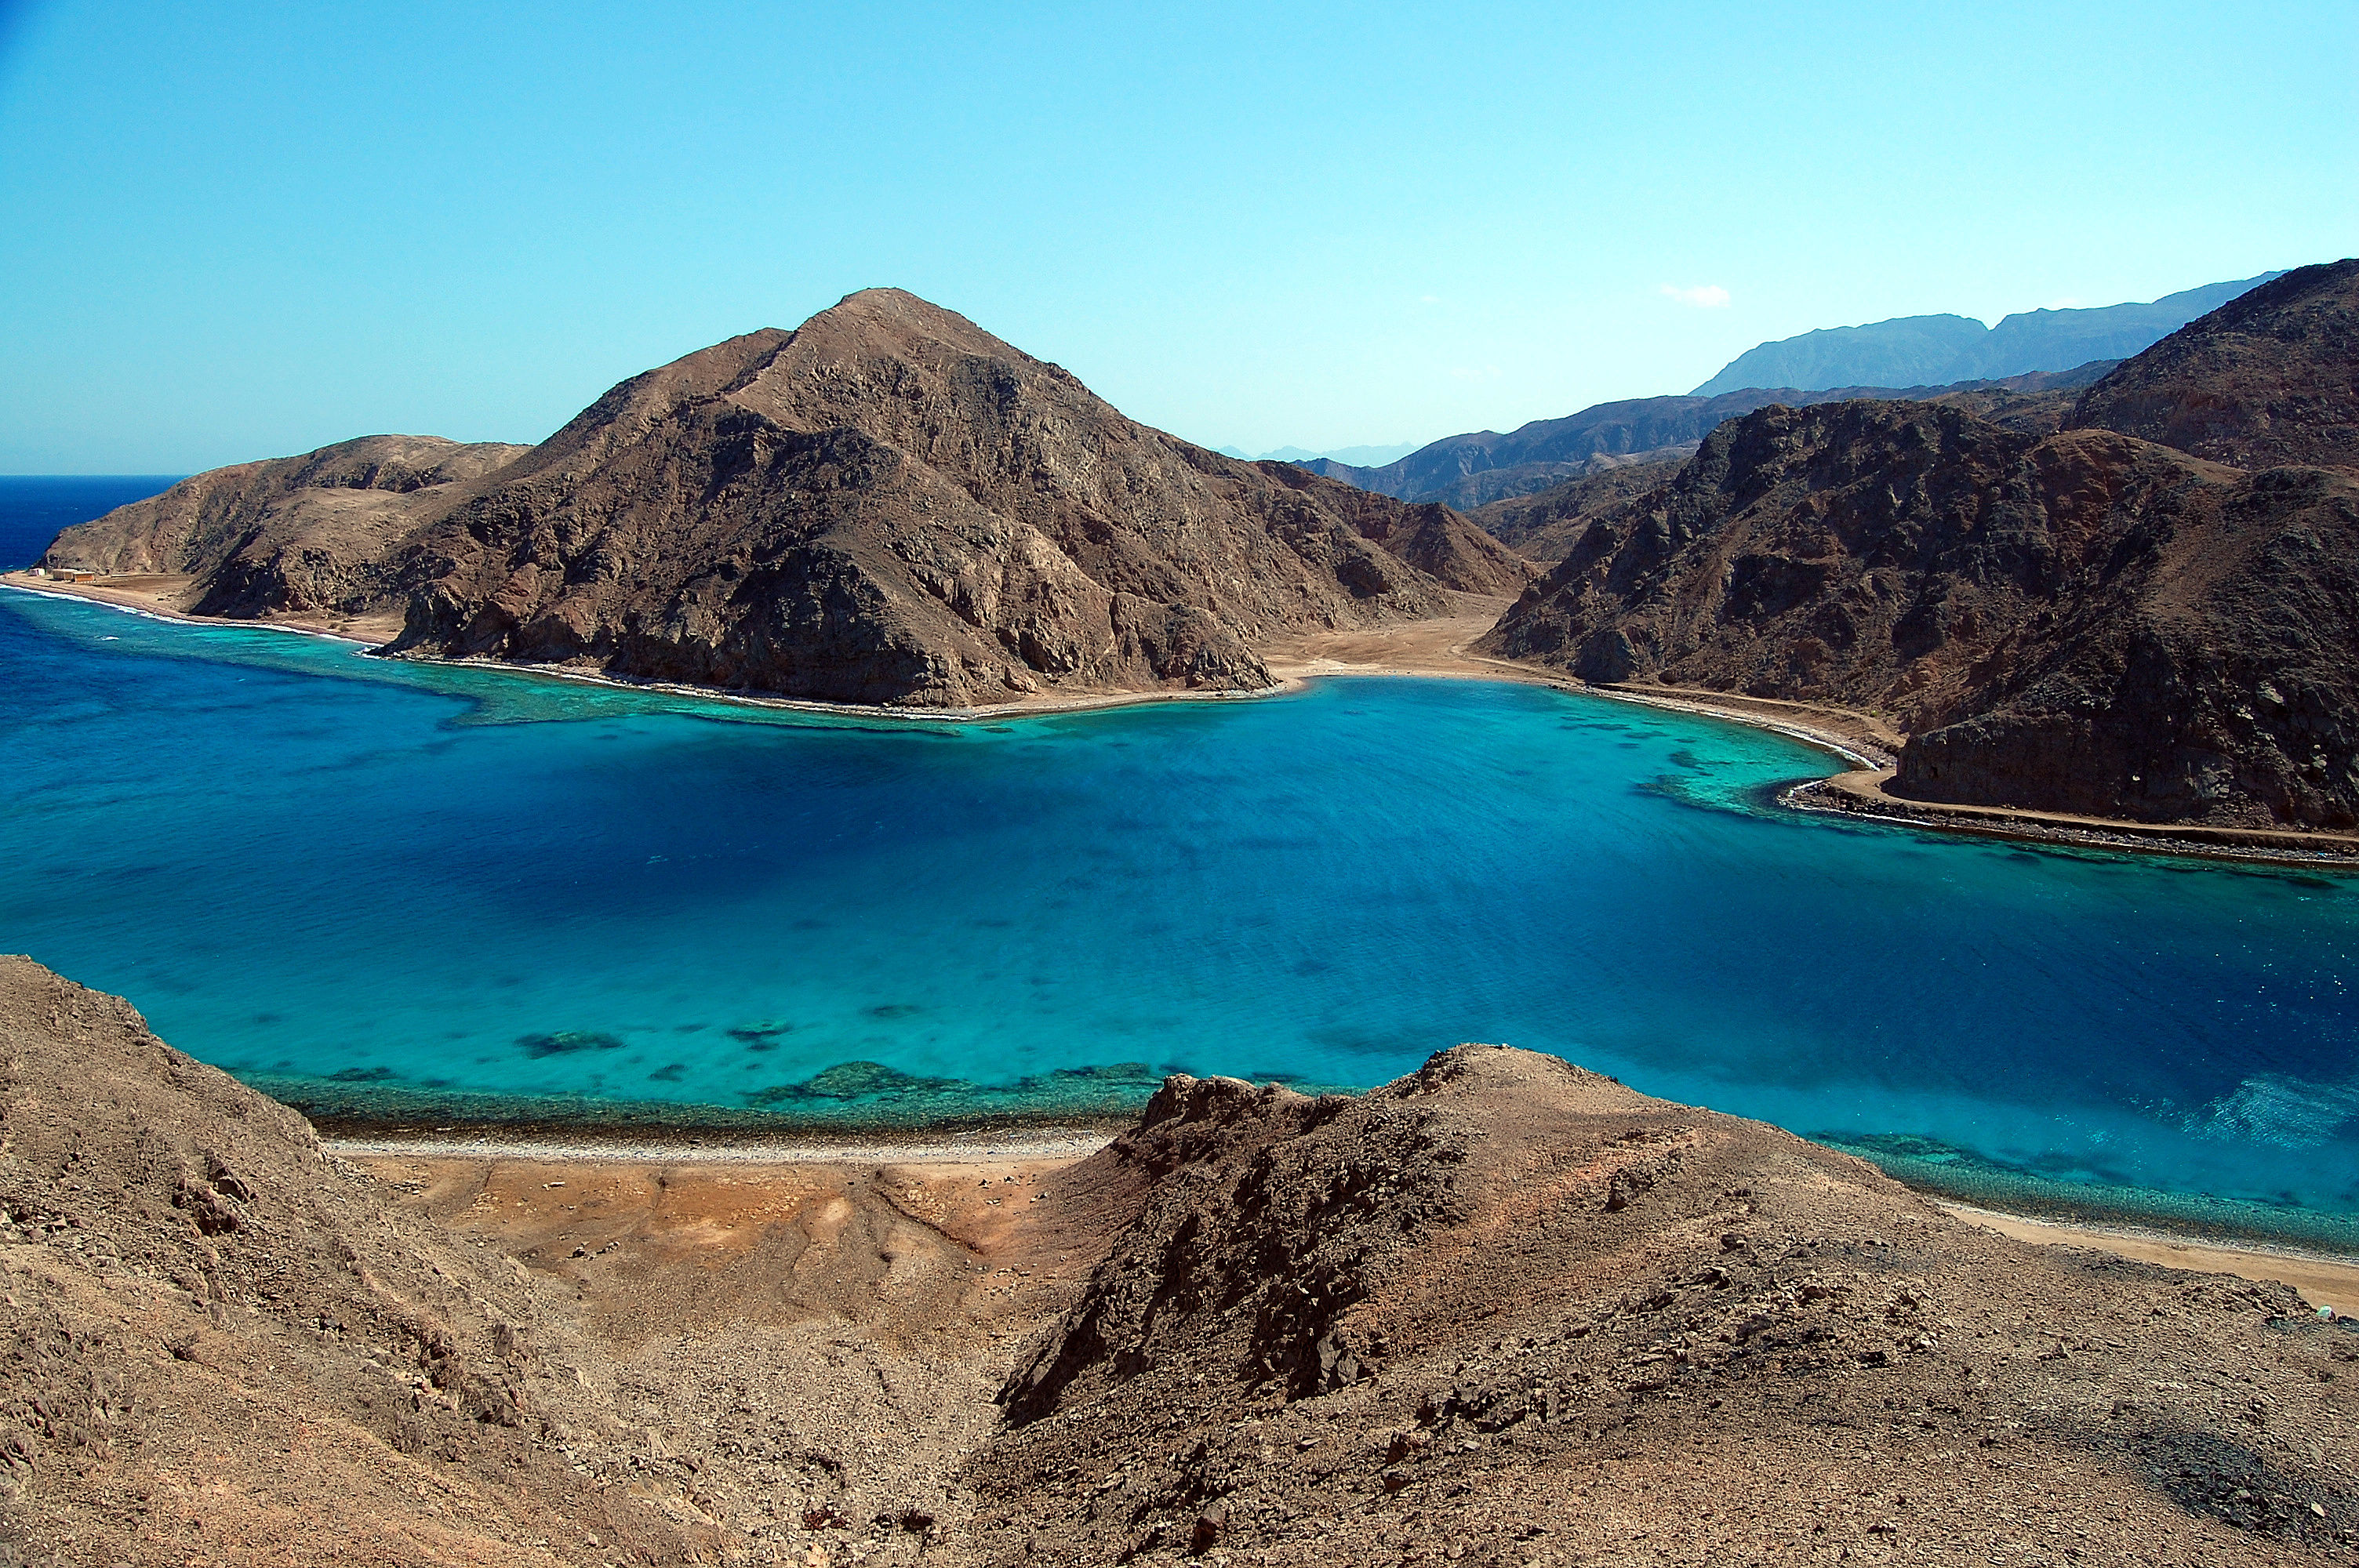 Beautiful view of Taba Heights, mountains and blue waters on the Sinai Peninsula in Egypt.